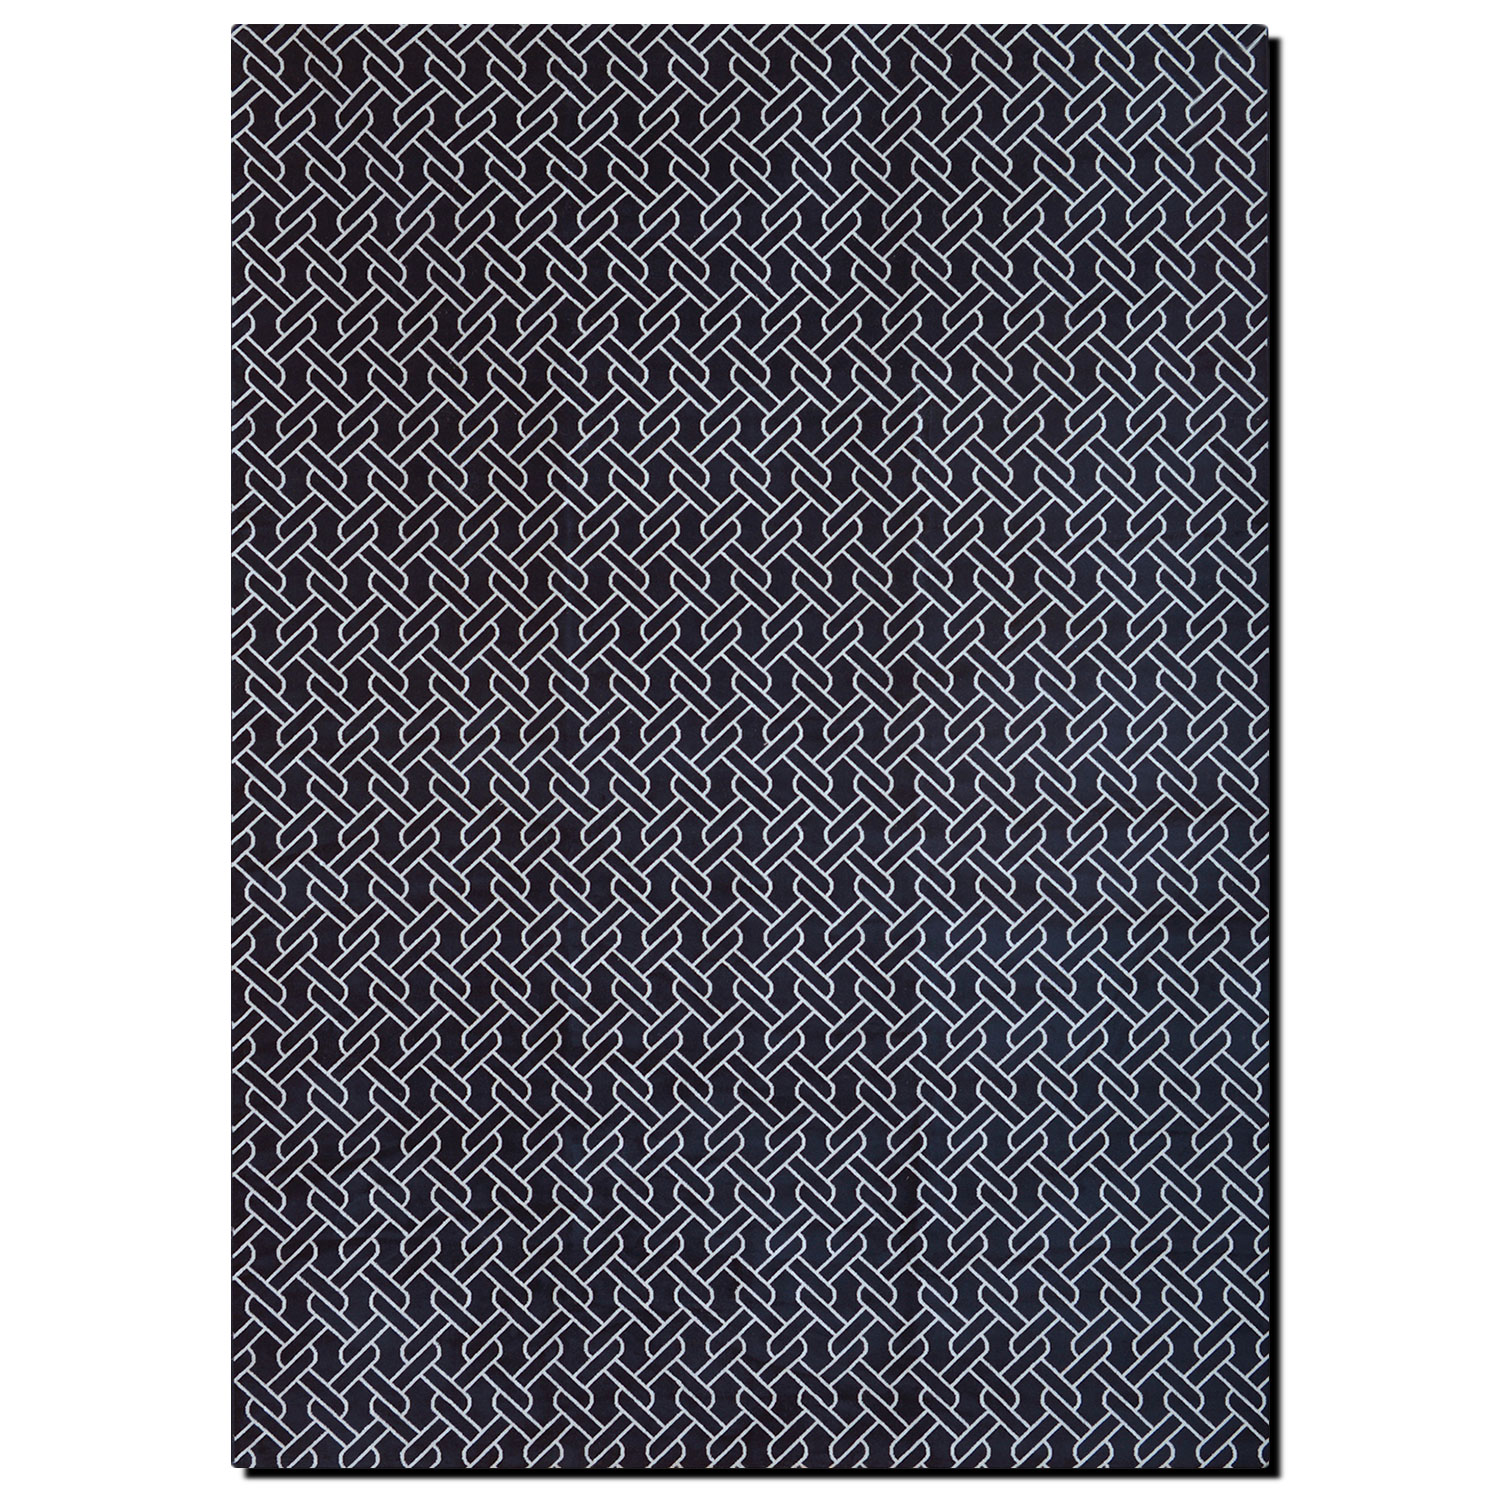 Rugs - Sonoma Area Rug - Navy and White Chain-Link